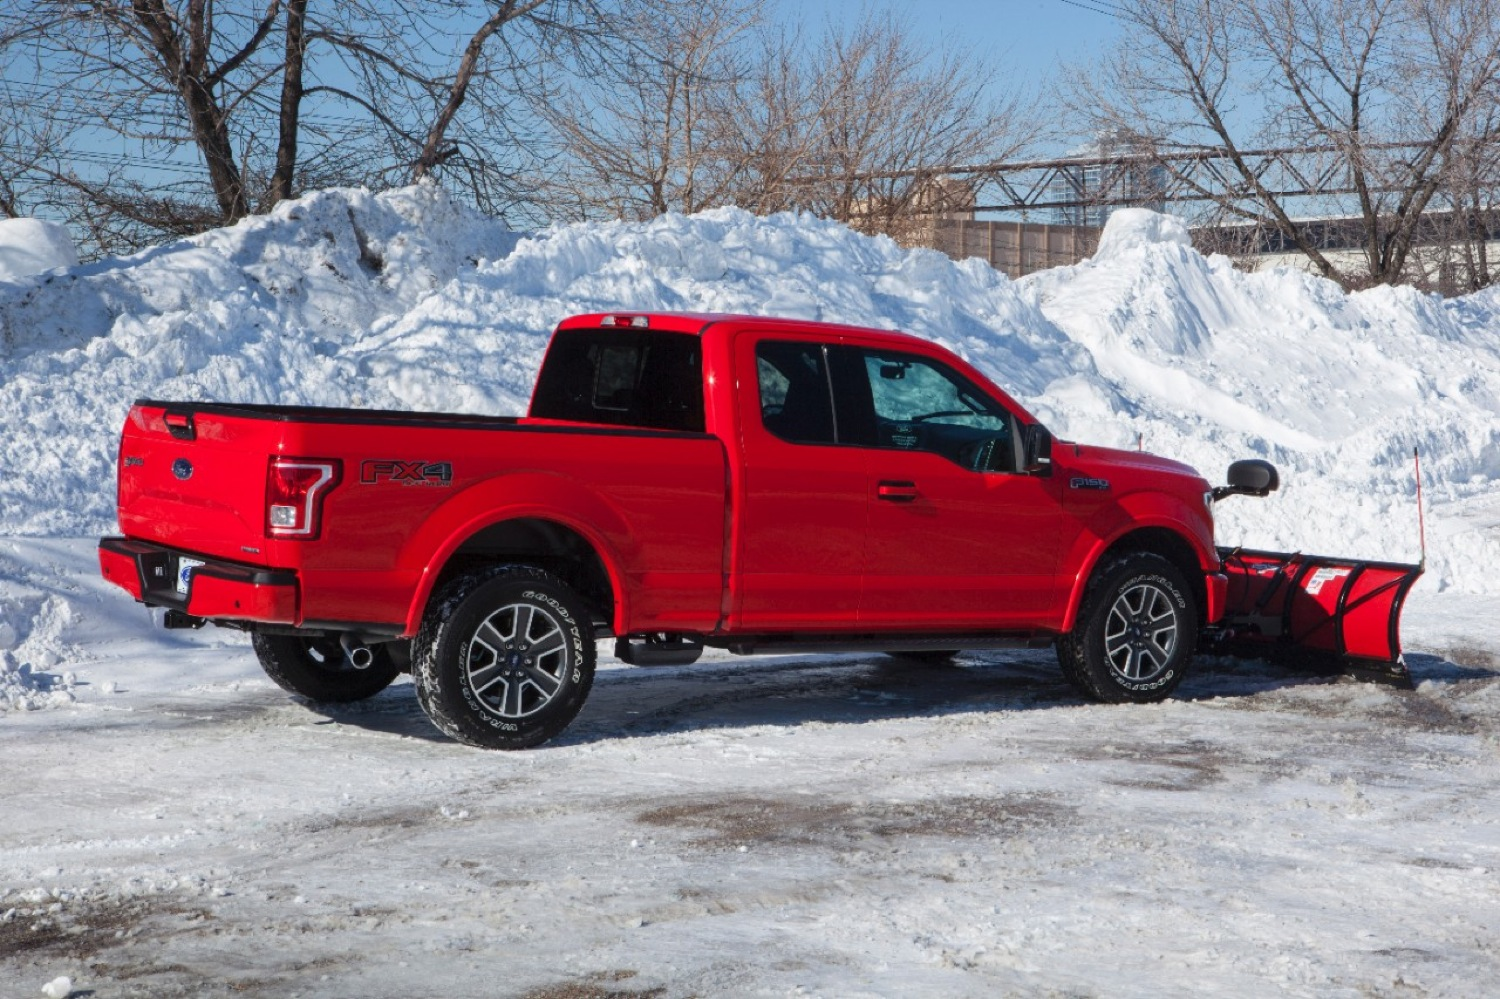 f150 ford plow snow. Black Bedroom Furniture Sets. Home Design Ideas